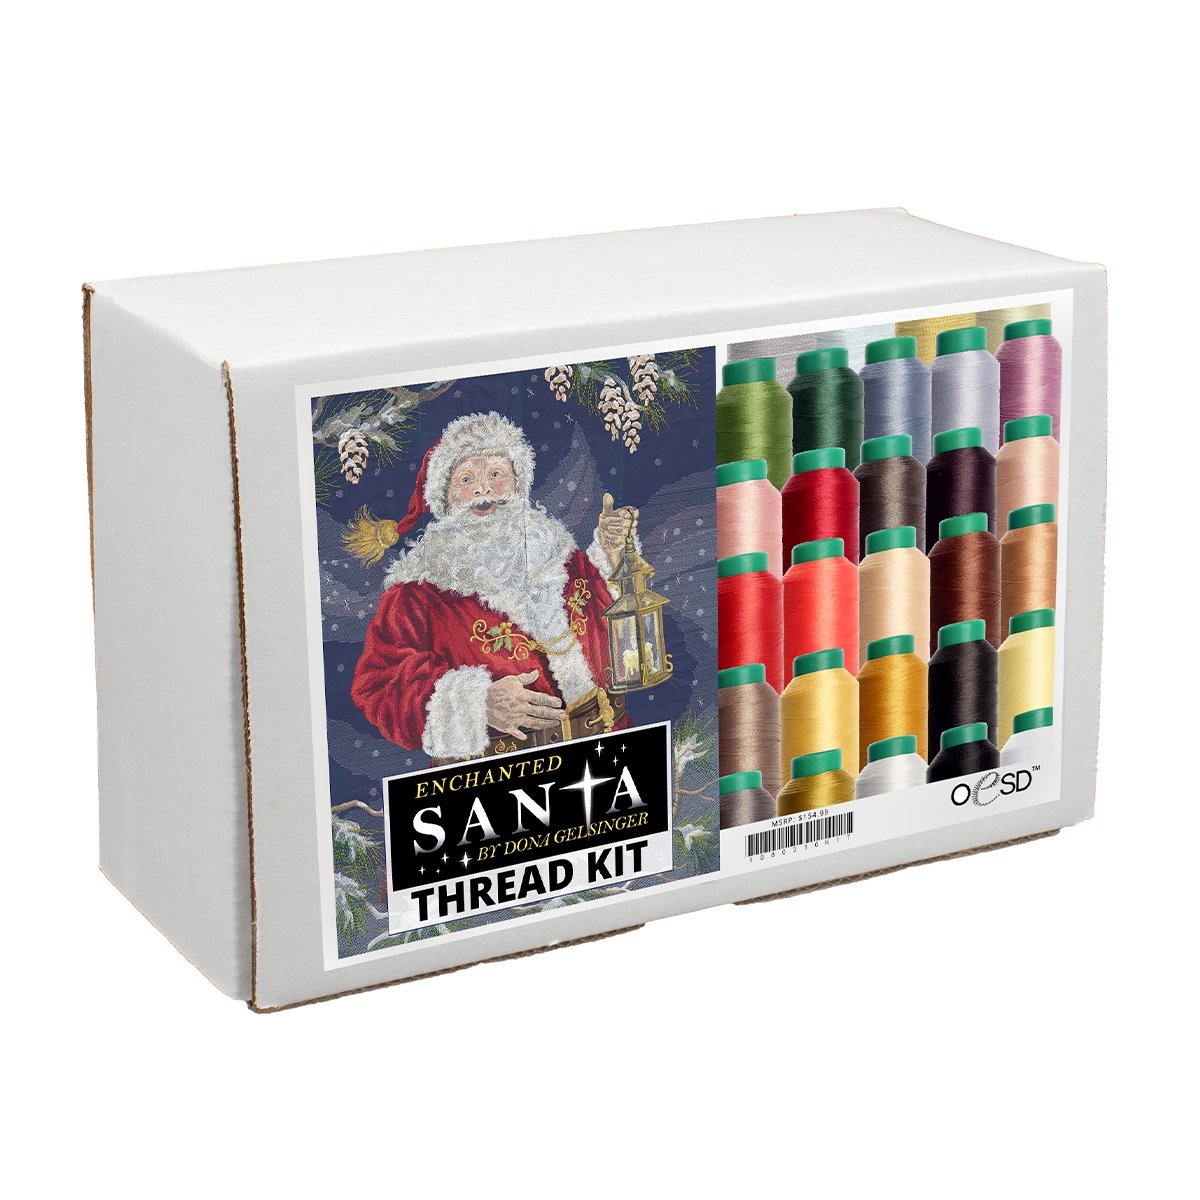 OESD Enchanted Santa Thread Kit